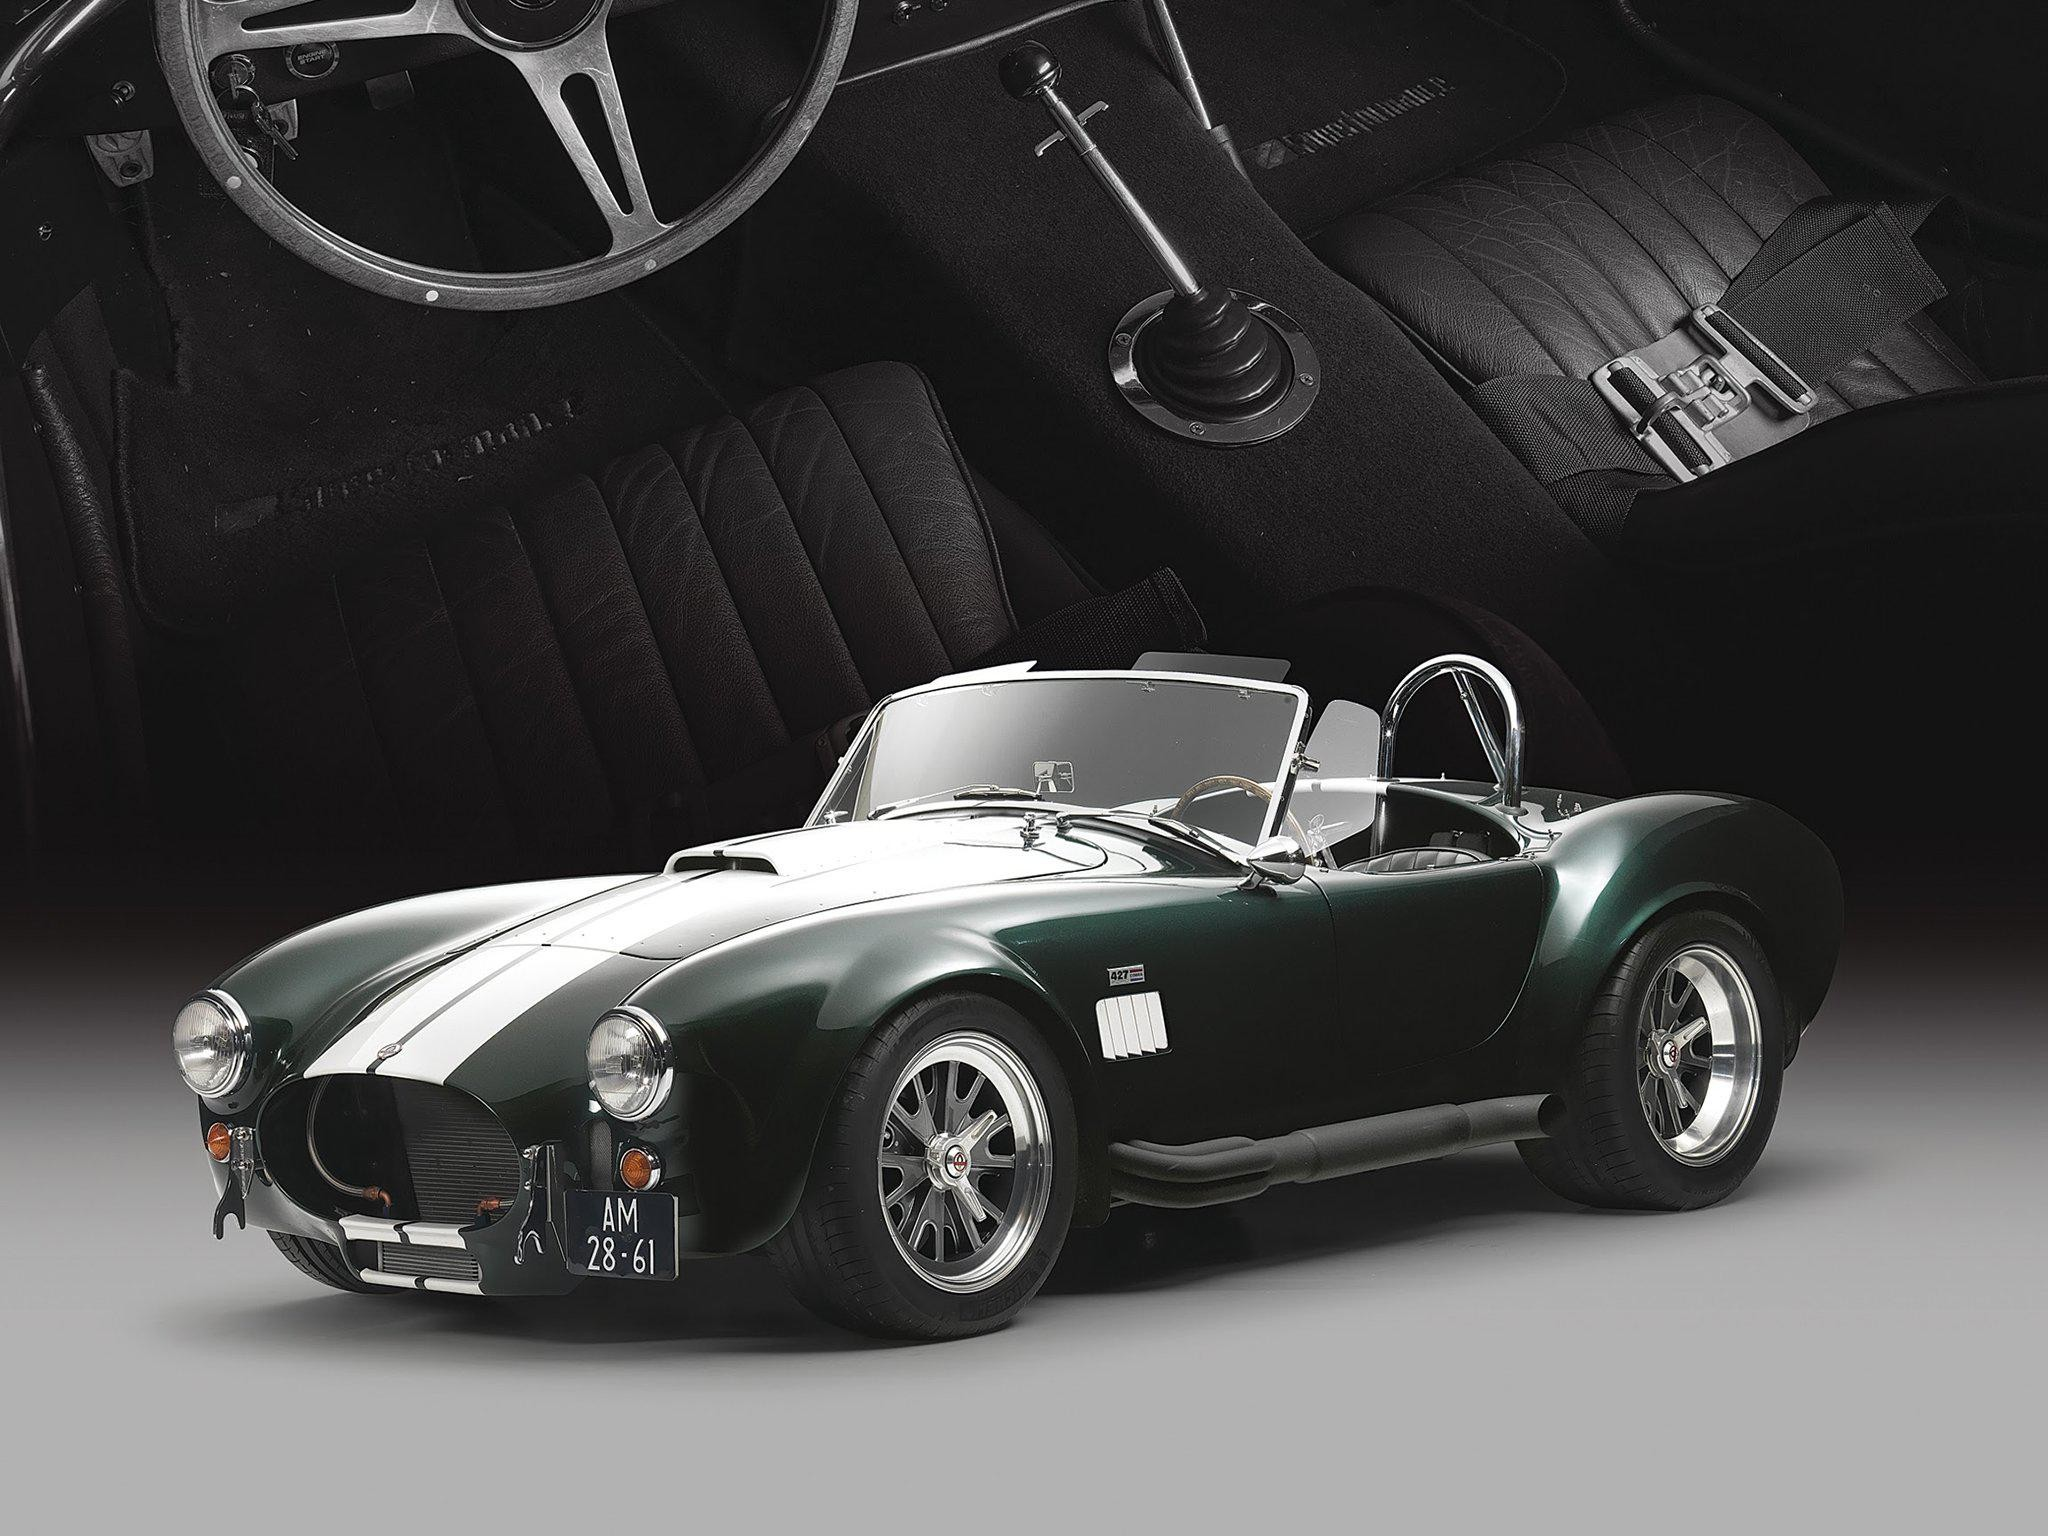 2048x1536 HD 1965 Shelby Cobra 427 Mkiii Supercar Hot Rod Rods Muscle Classic  Background Free Wallpaper